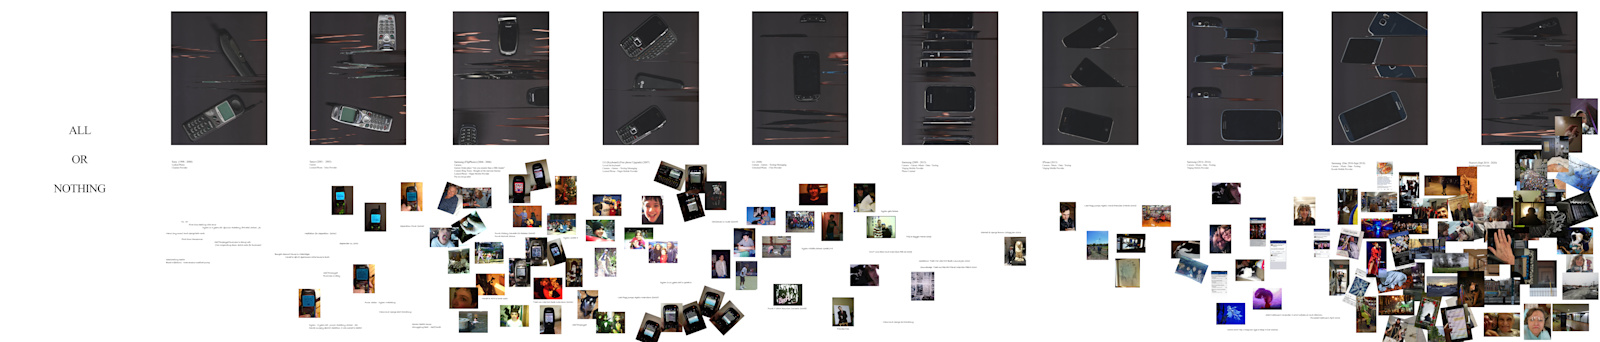 """All or Nothing 2020  Inkjet Print  (110"""" x 23.5"""" inches)"""